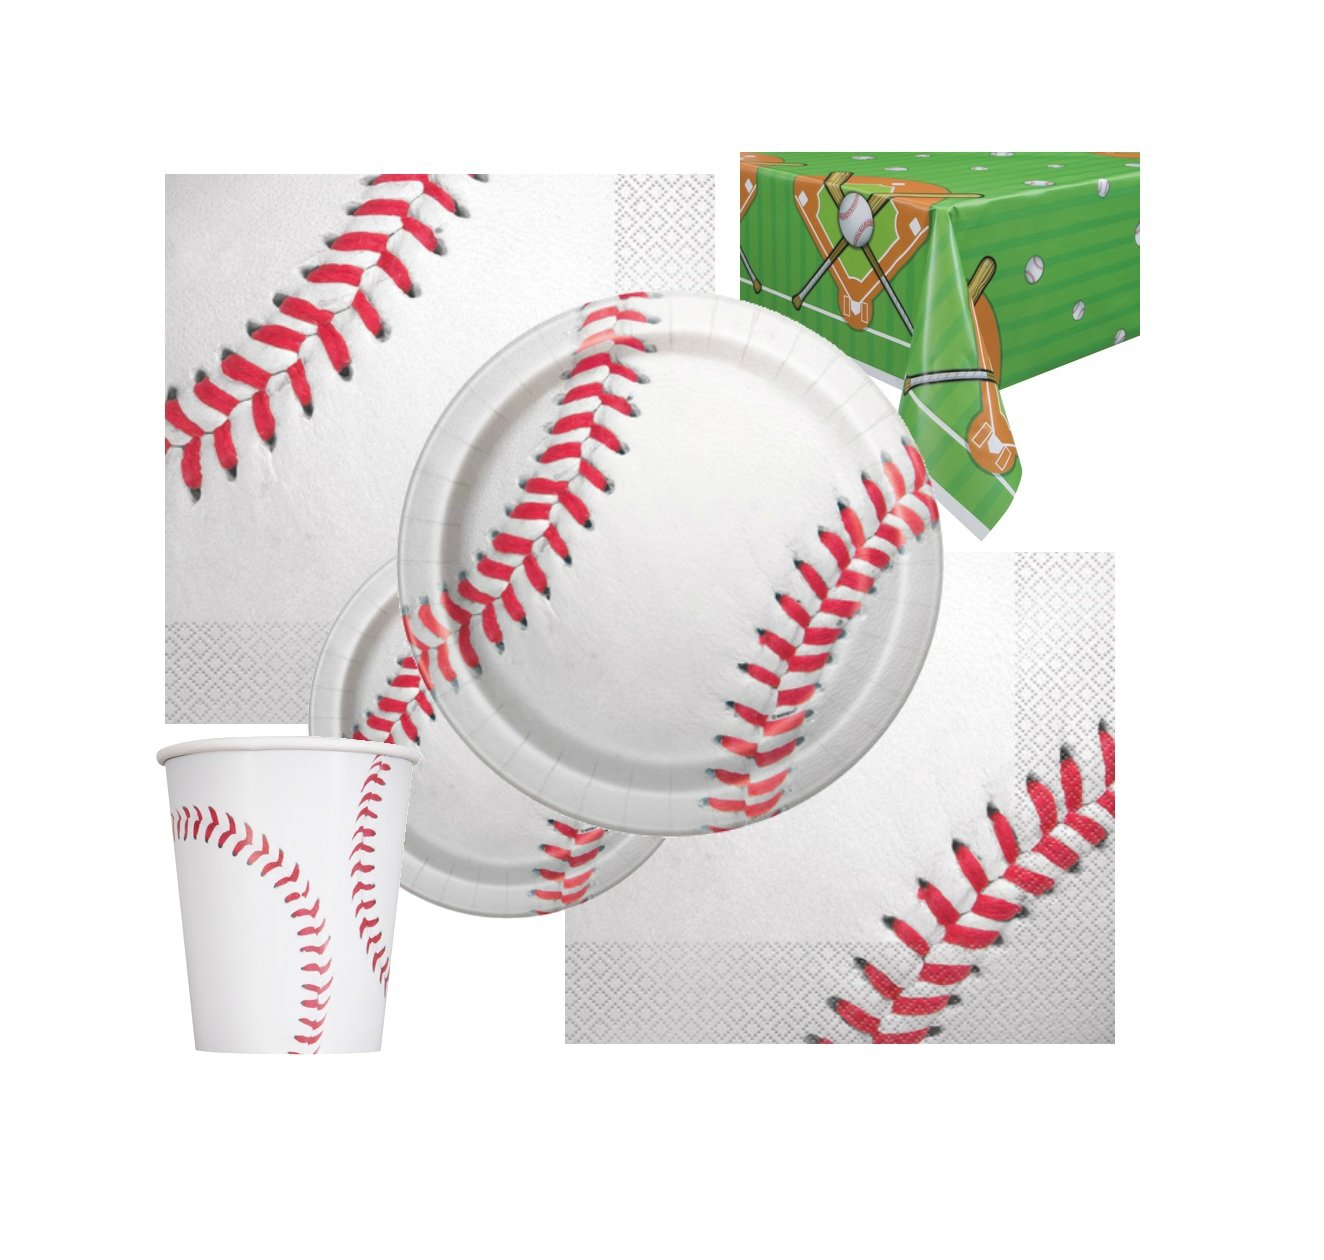 Baseball Themed Birthday Deluxe Party Pack Serves 16 Plates Cups Napkins & Tablecloth